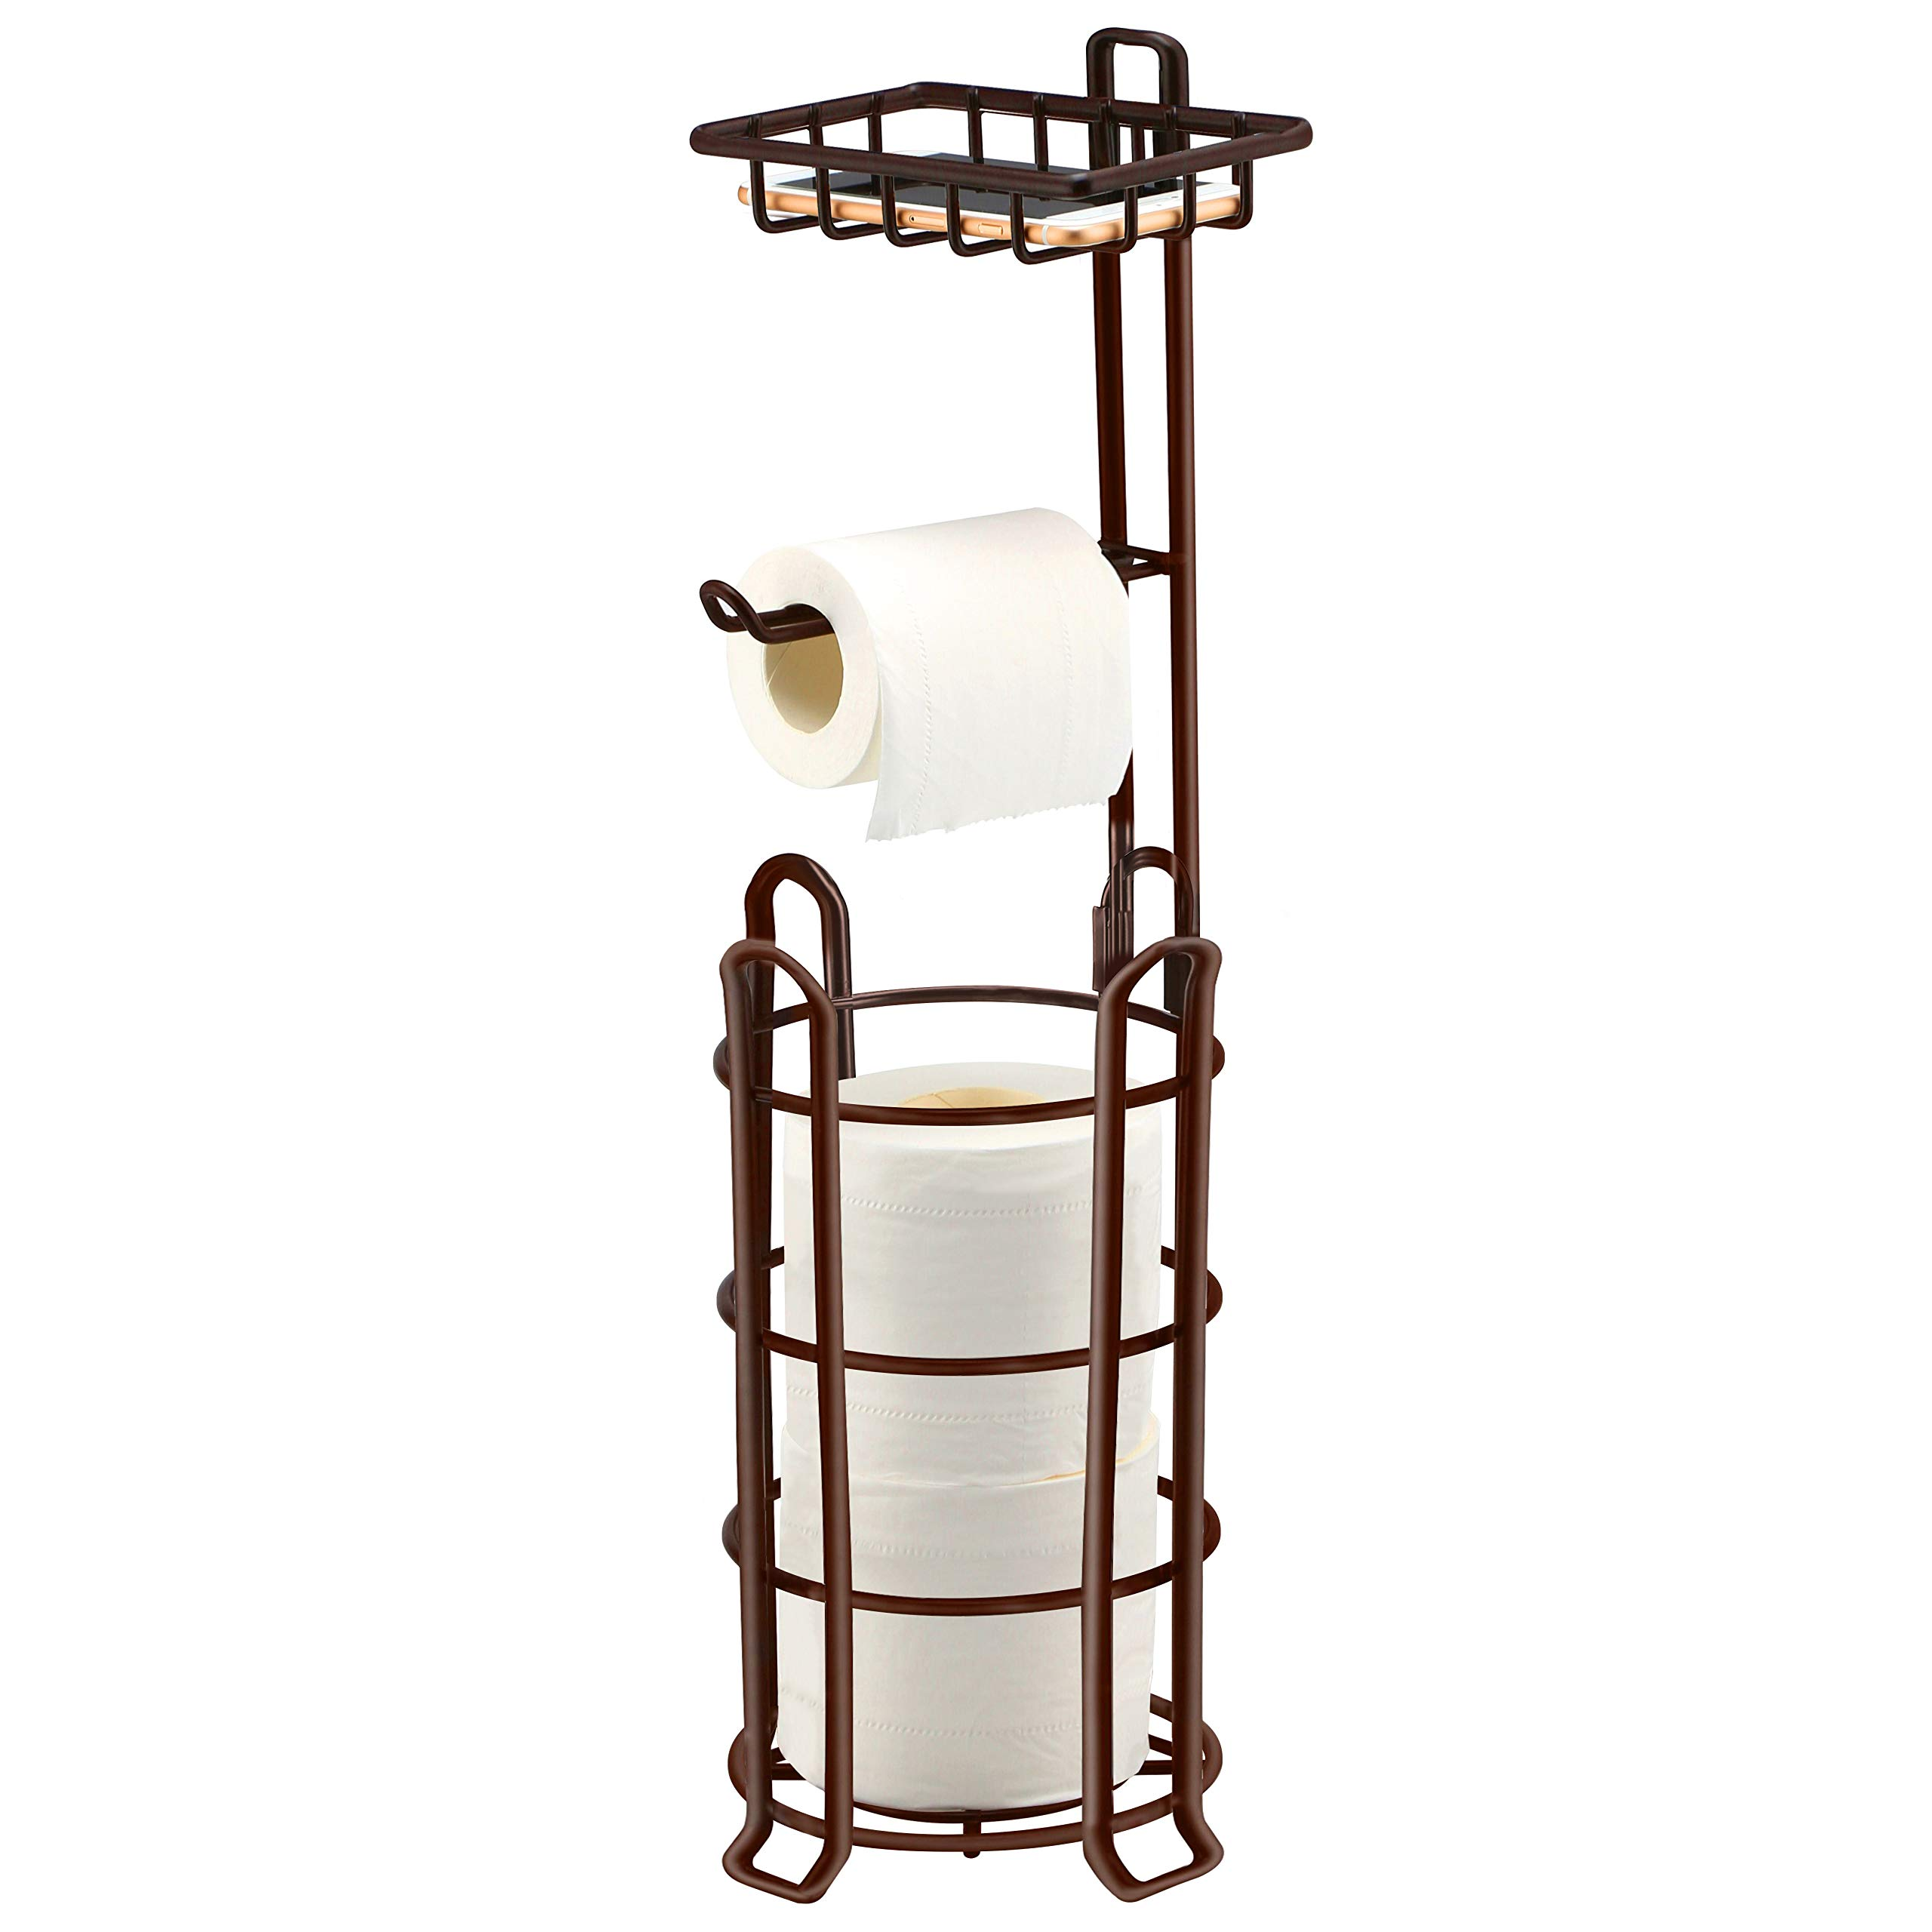 TomCare Toilet Paper Holder Toilet Paper Stand 4 Raised Feet Bathroom Accessories Portable Tissue Paper Dispenser Reserve Free Standing Toilet Paper Roll Storage Shelf Bathroom Bronze by TomCare